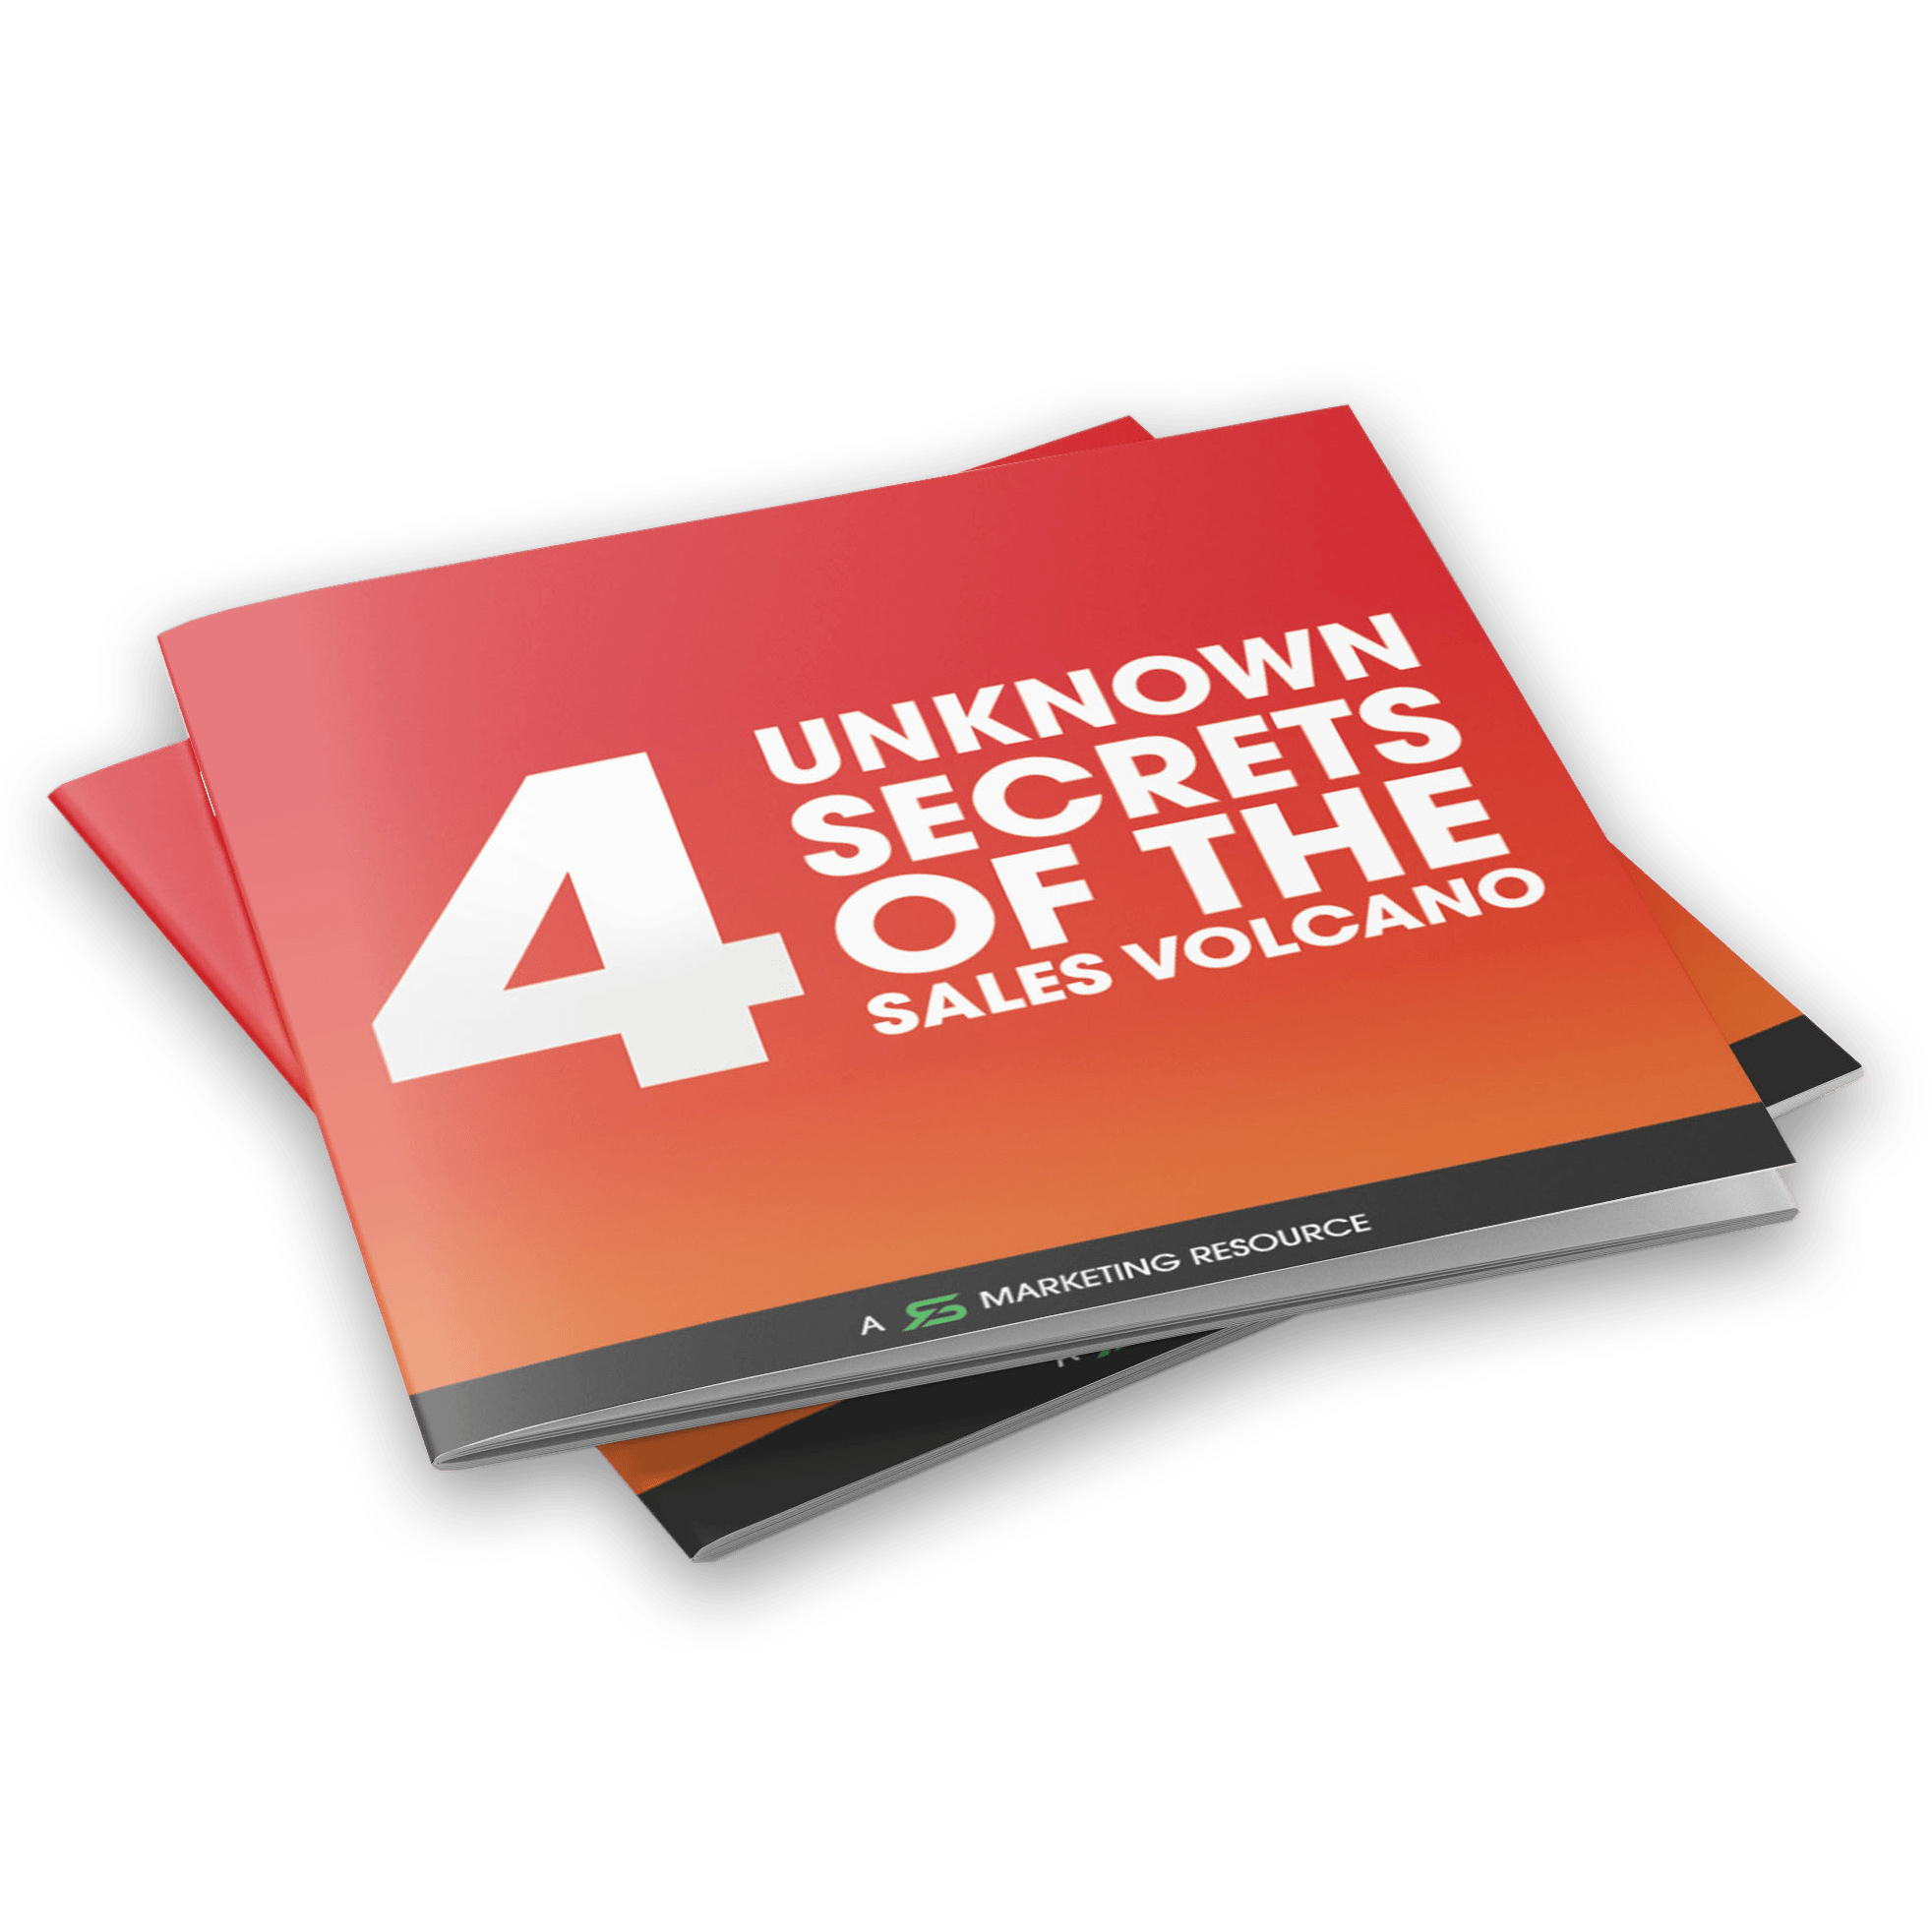 4 unknown secrets of the sales volcano